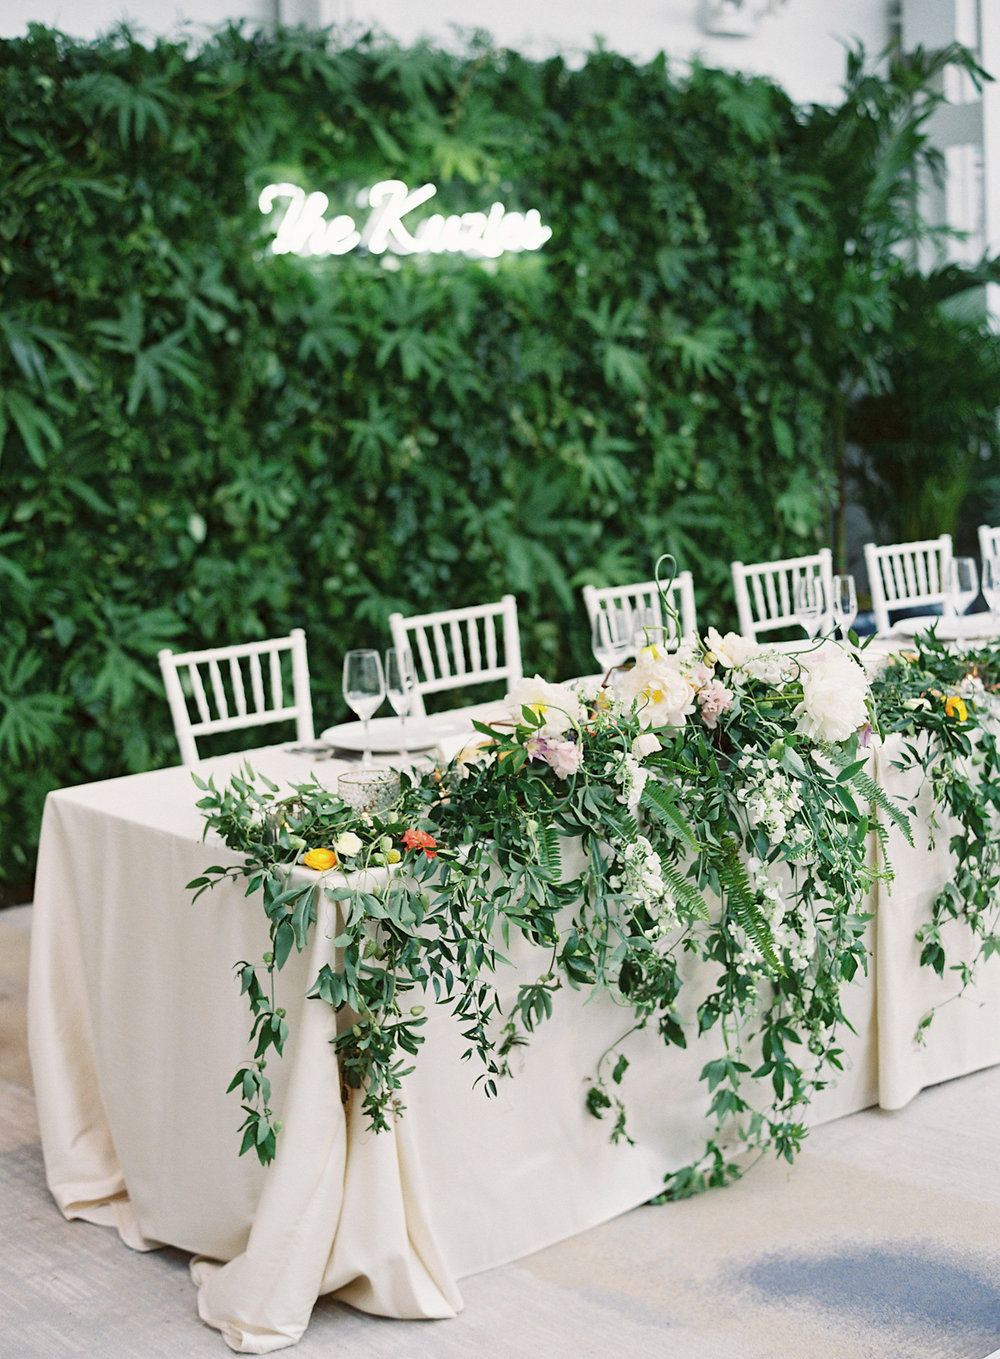 Brooklyn Botanic Gardens wedding, Judy Pak Photography, Ang Weddings and Events, Mimosa Floral Design